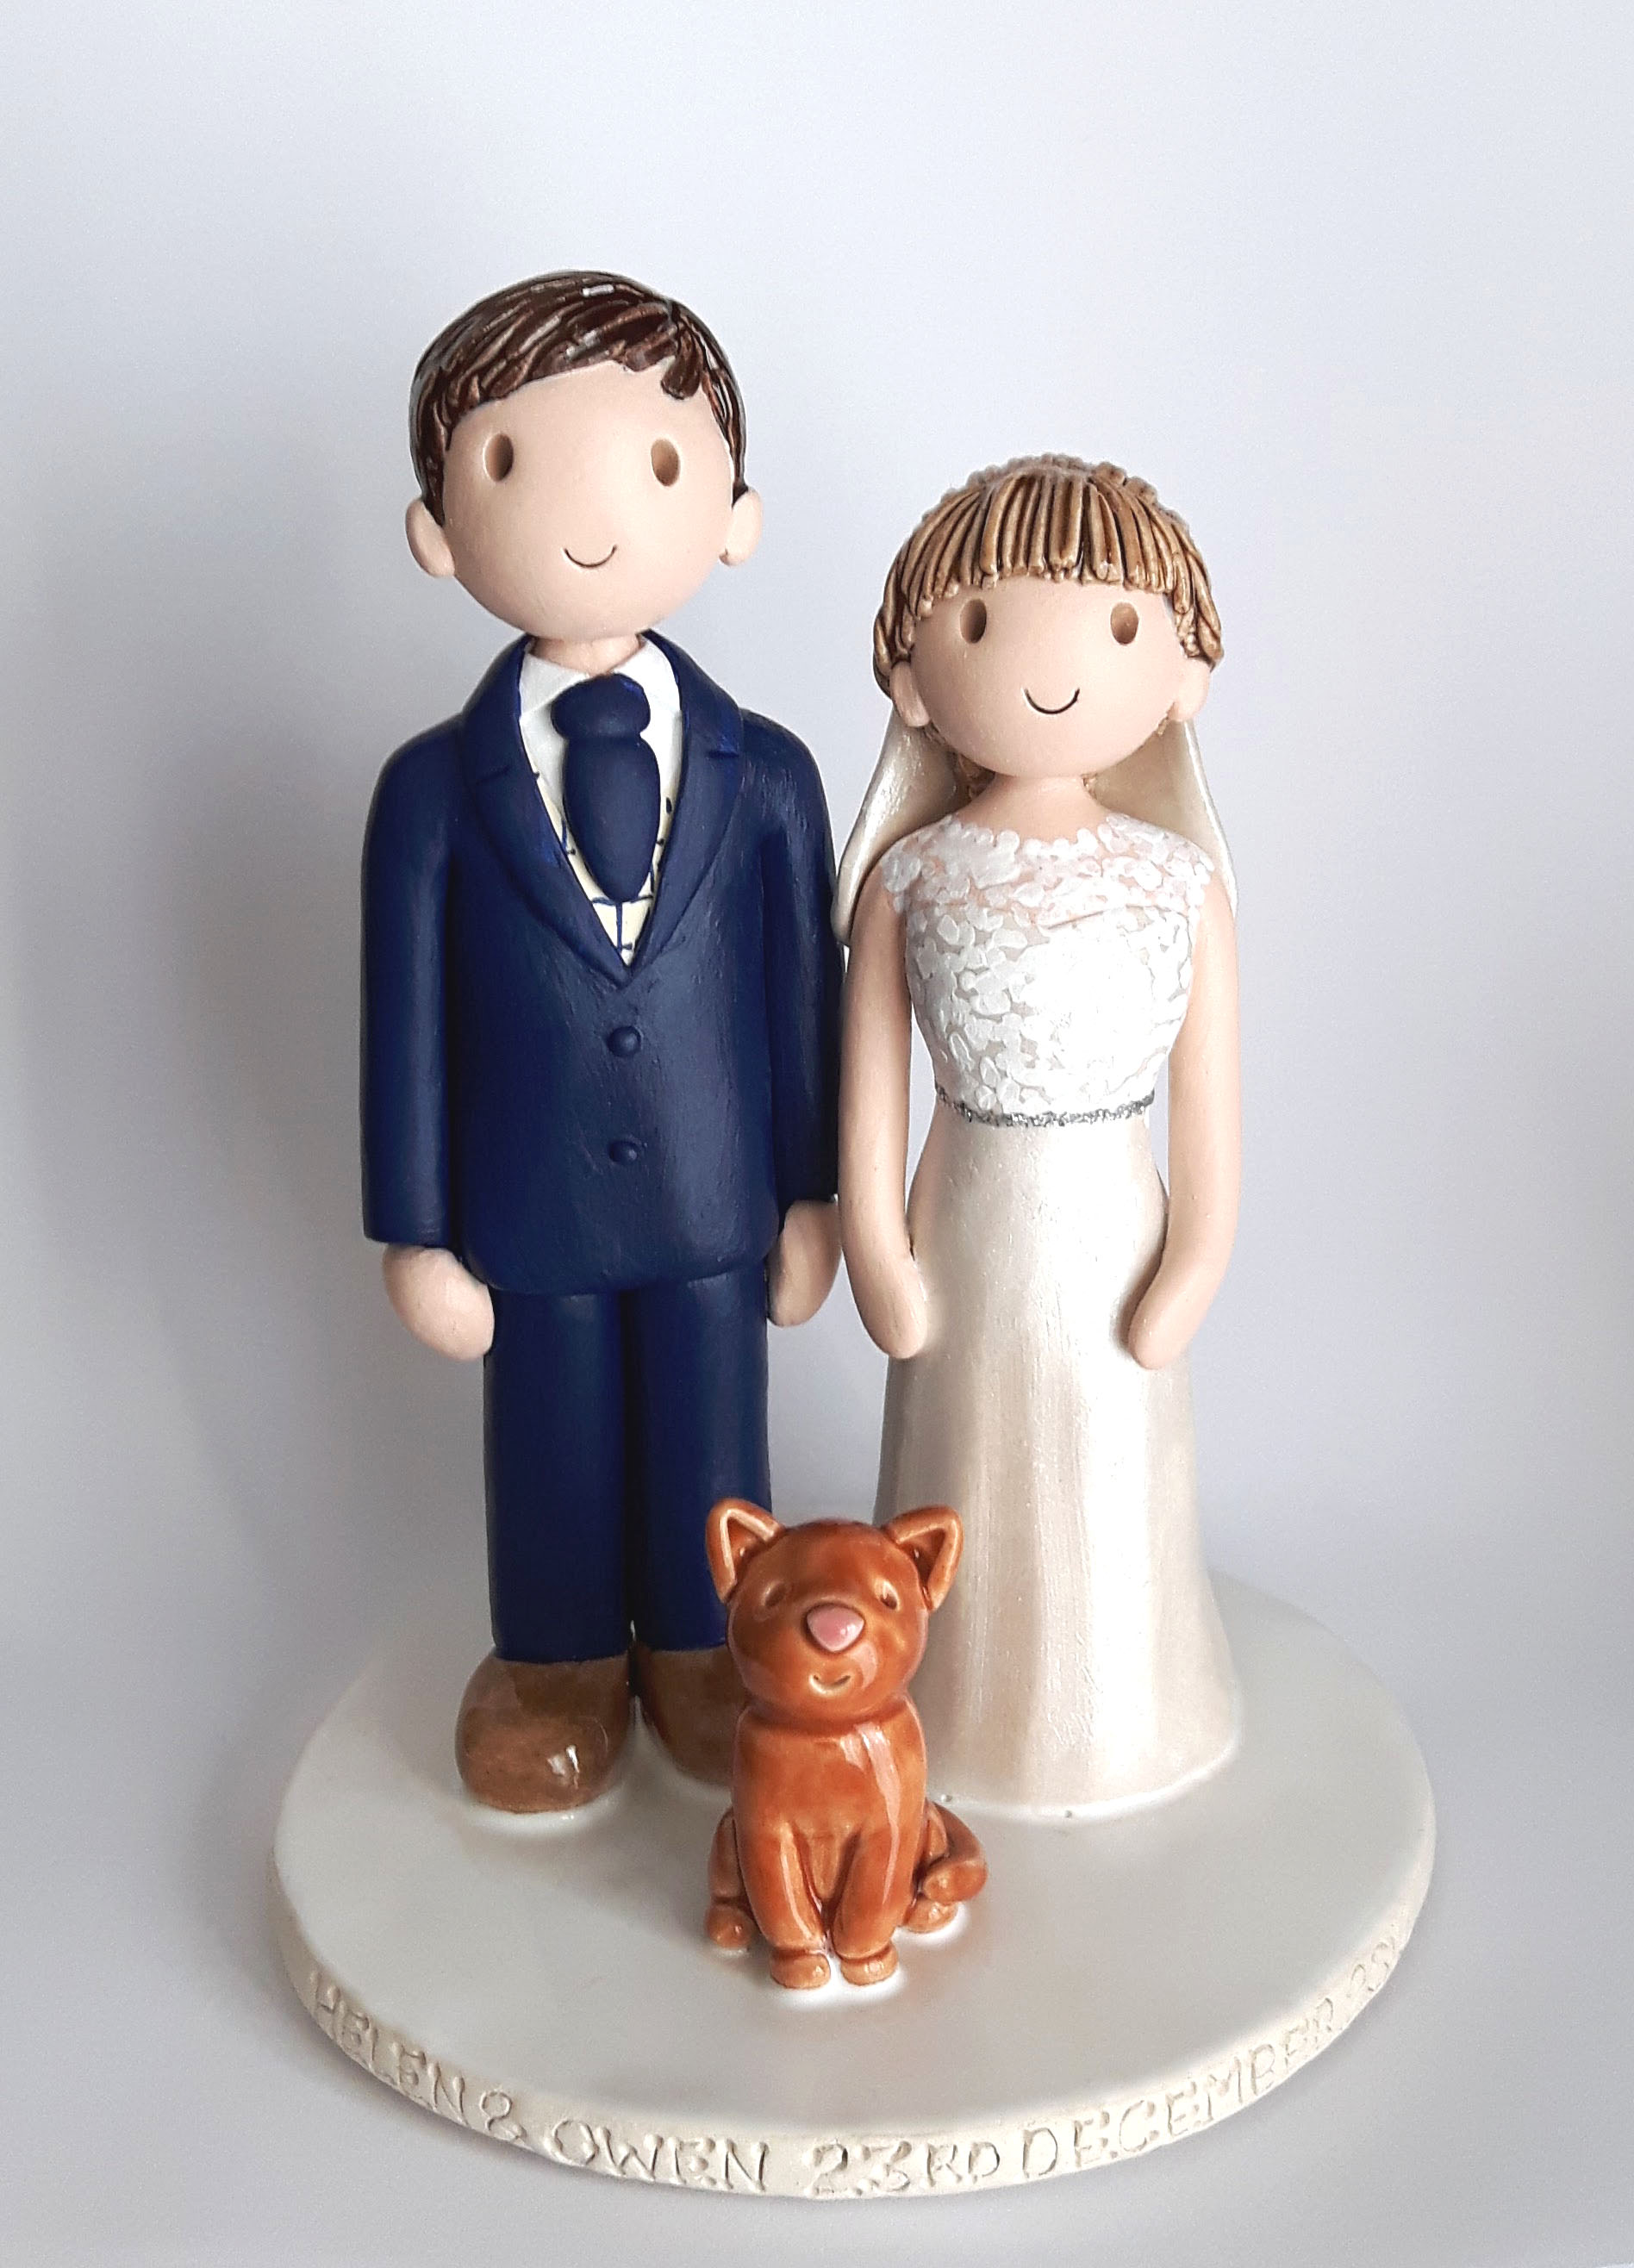 wedding cake toppers cats uk wedding cake toppers gallery examples of toppers we 26435